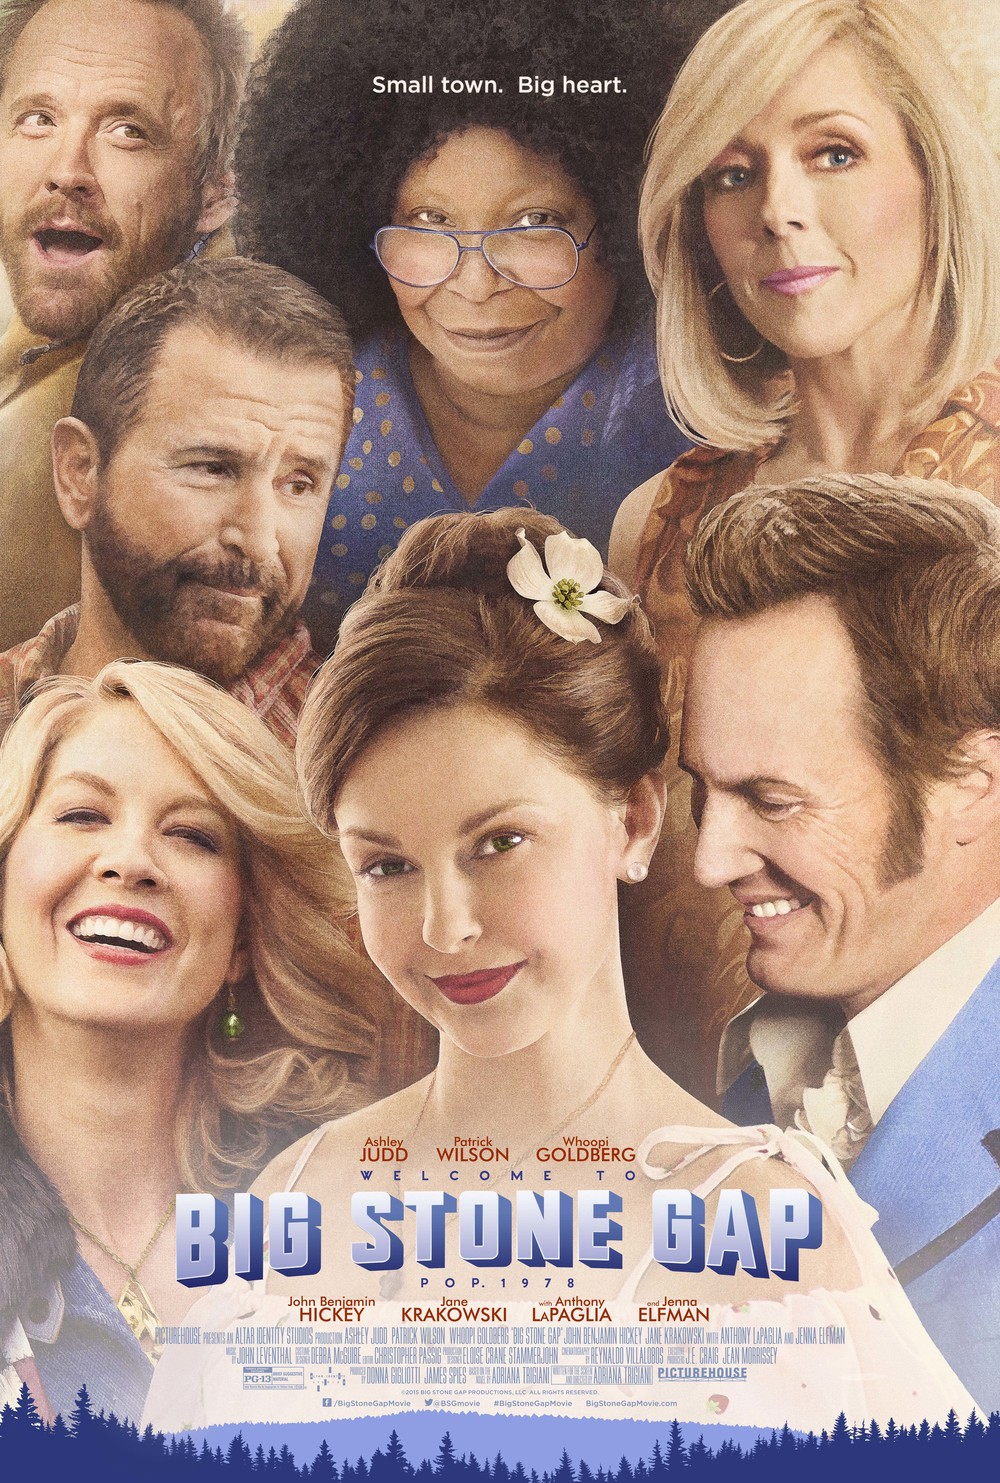 Starring: Ashley Judd, Patrick Wilson, Whoopi Goldberg, John Benjamin Hickey, Jane Krakowski, Anthony LaPaglia, Jenna Elfman, Jasmine Guy, Judith Ivey